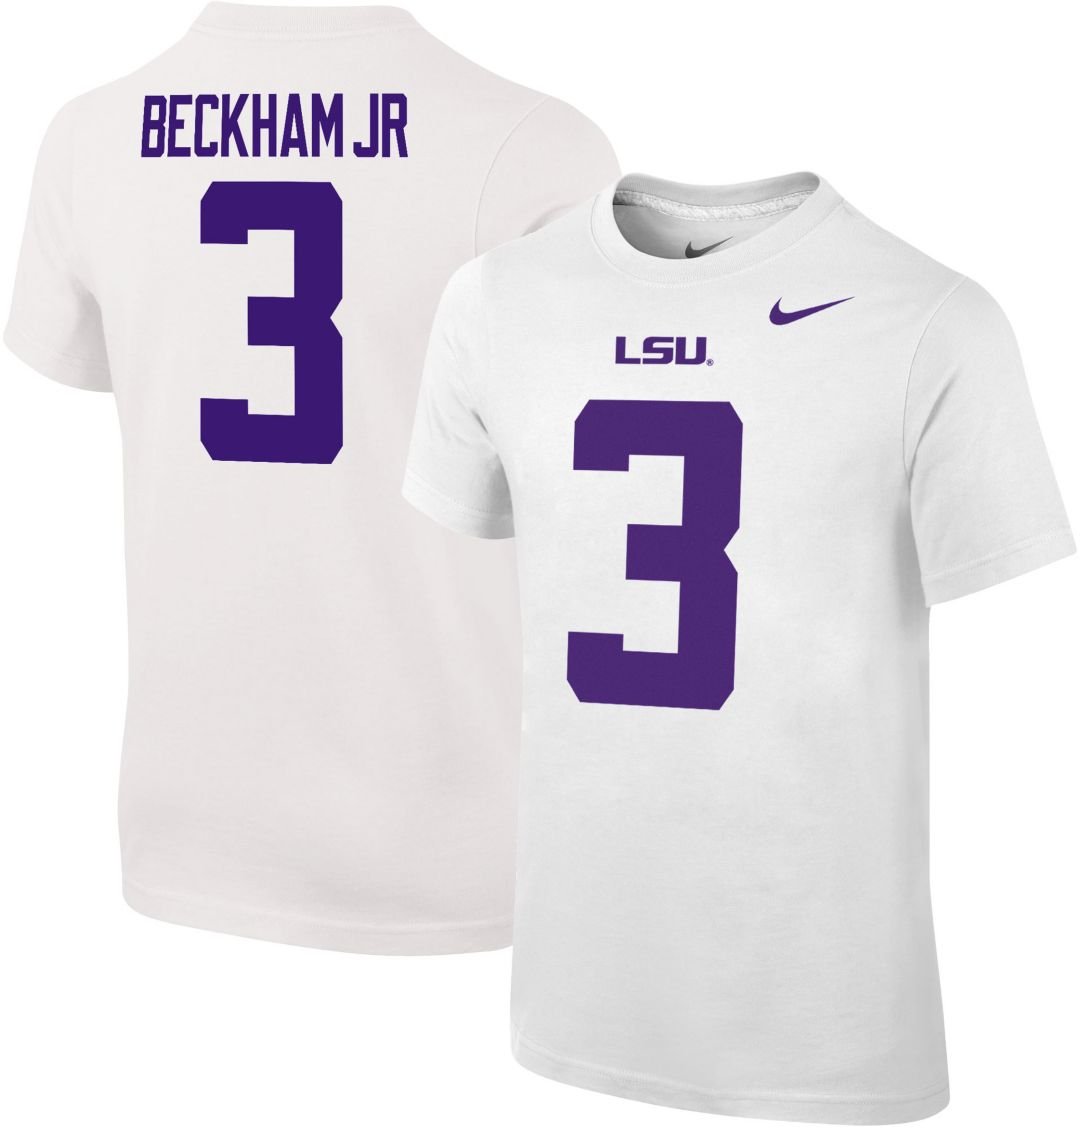 brand new 7ca00 664f2 Nike Youth Odell Beckham Jr. LSU Tigers #3 Cotton Football Jersey White  T-Shirt